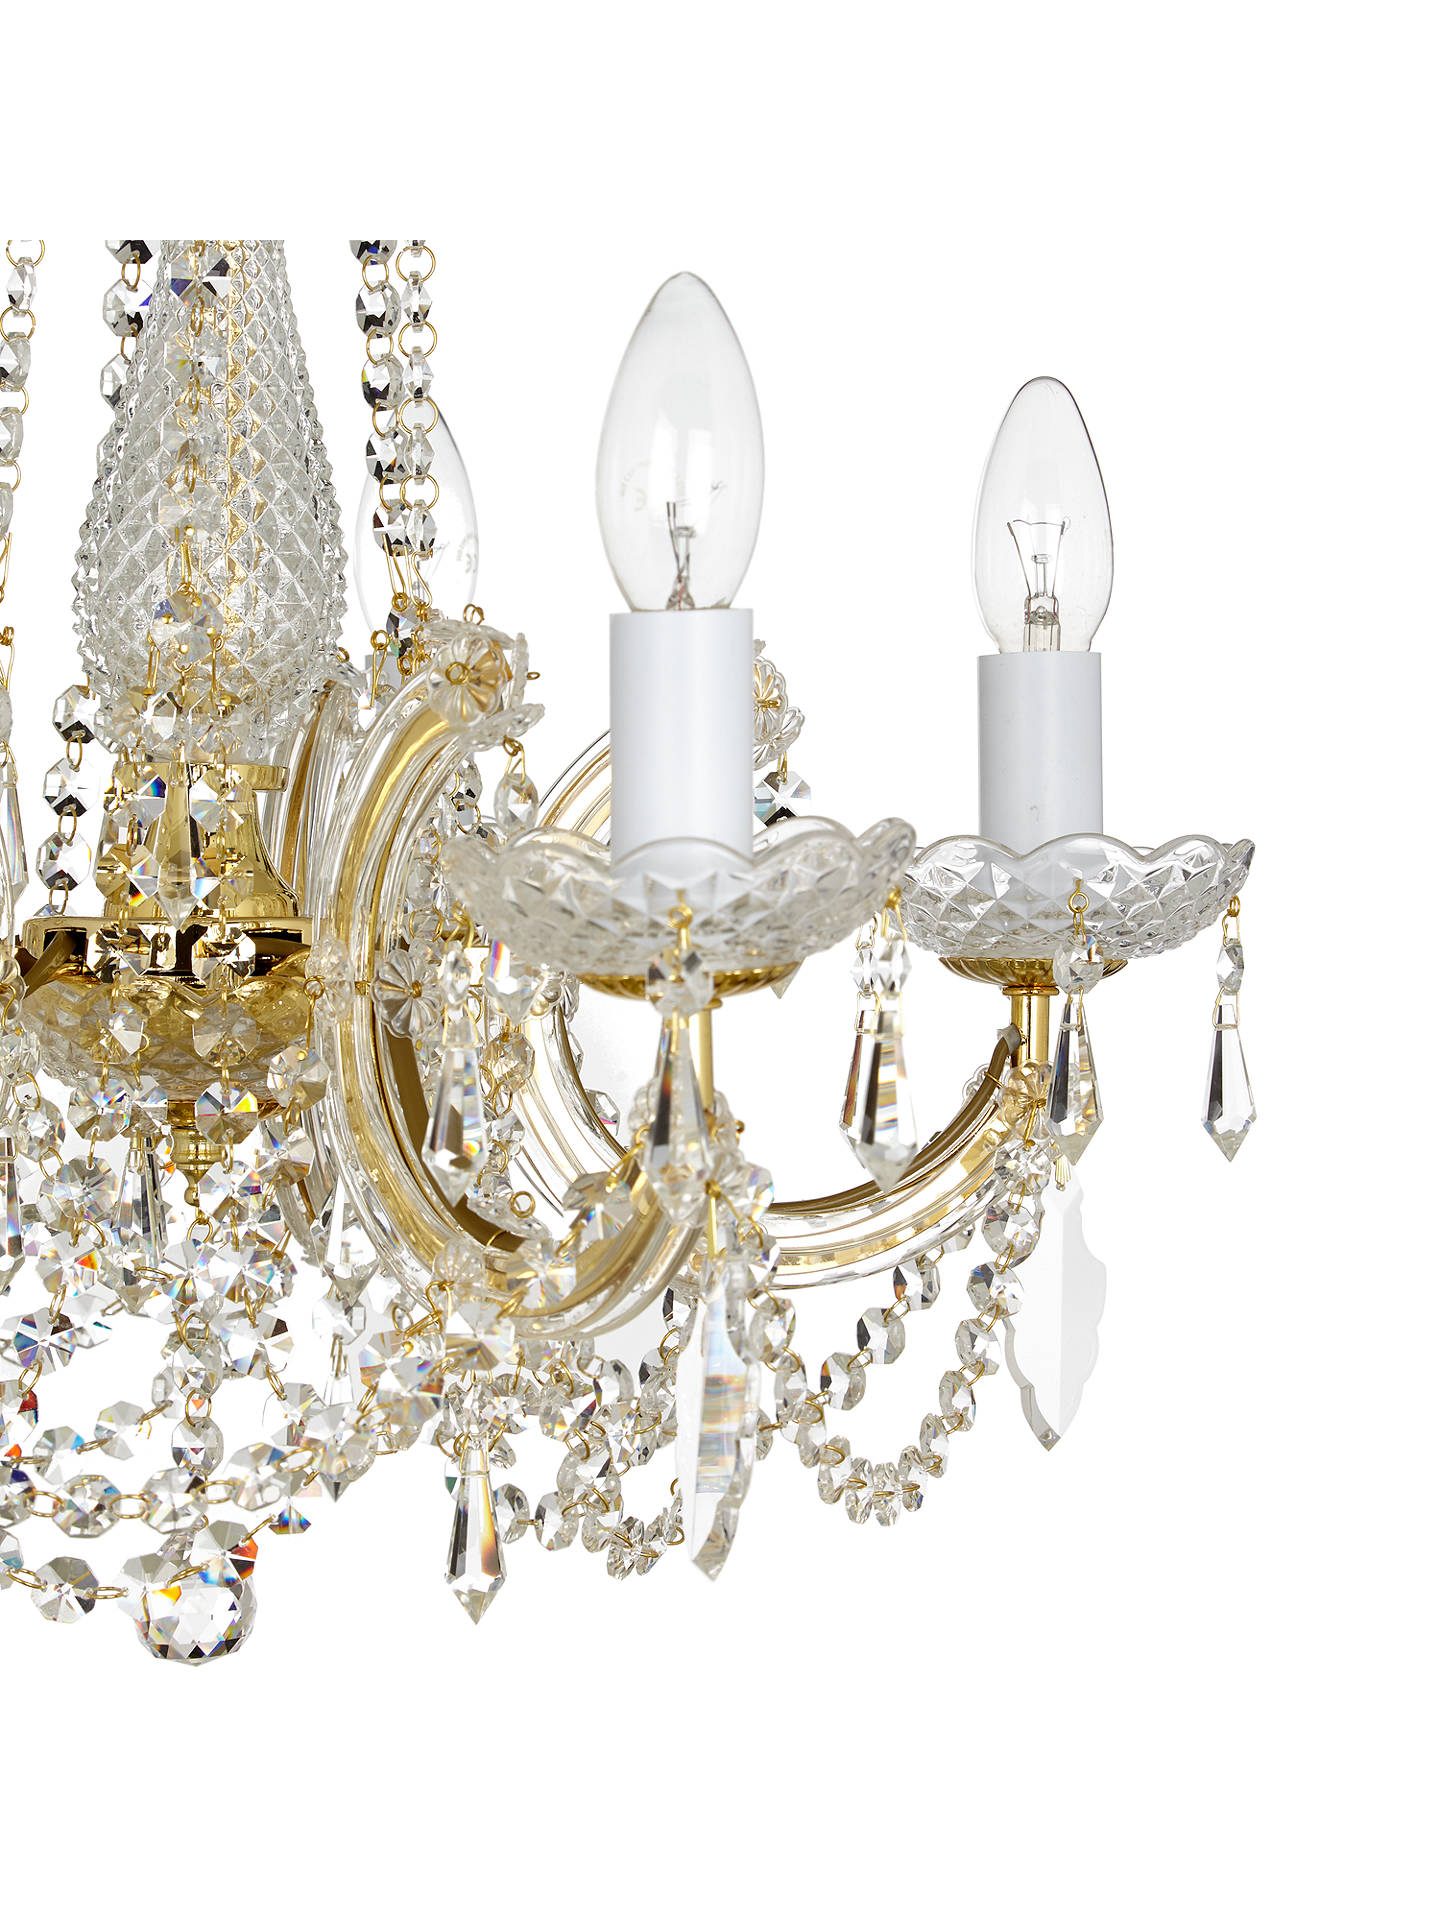 Buy Impex Marie Theresa Chandelier, 5 Arm, Clear/Gold Online at johnlewis.com